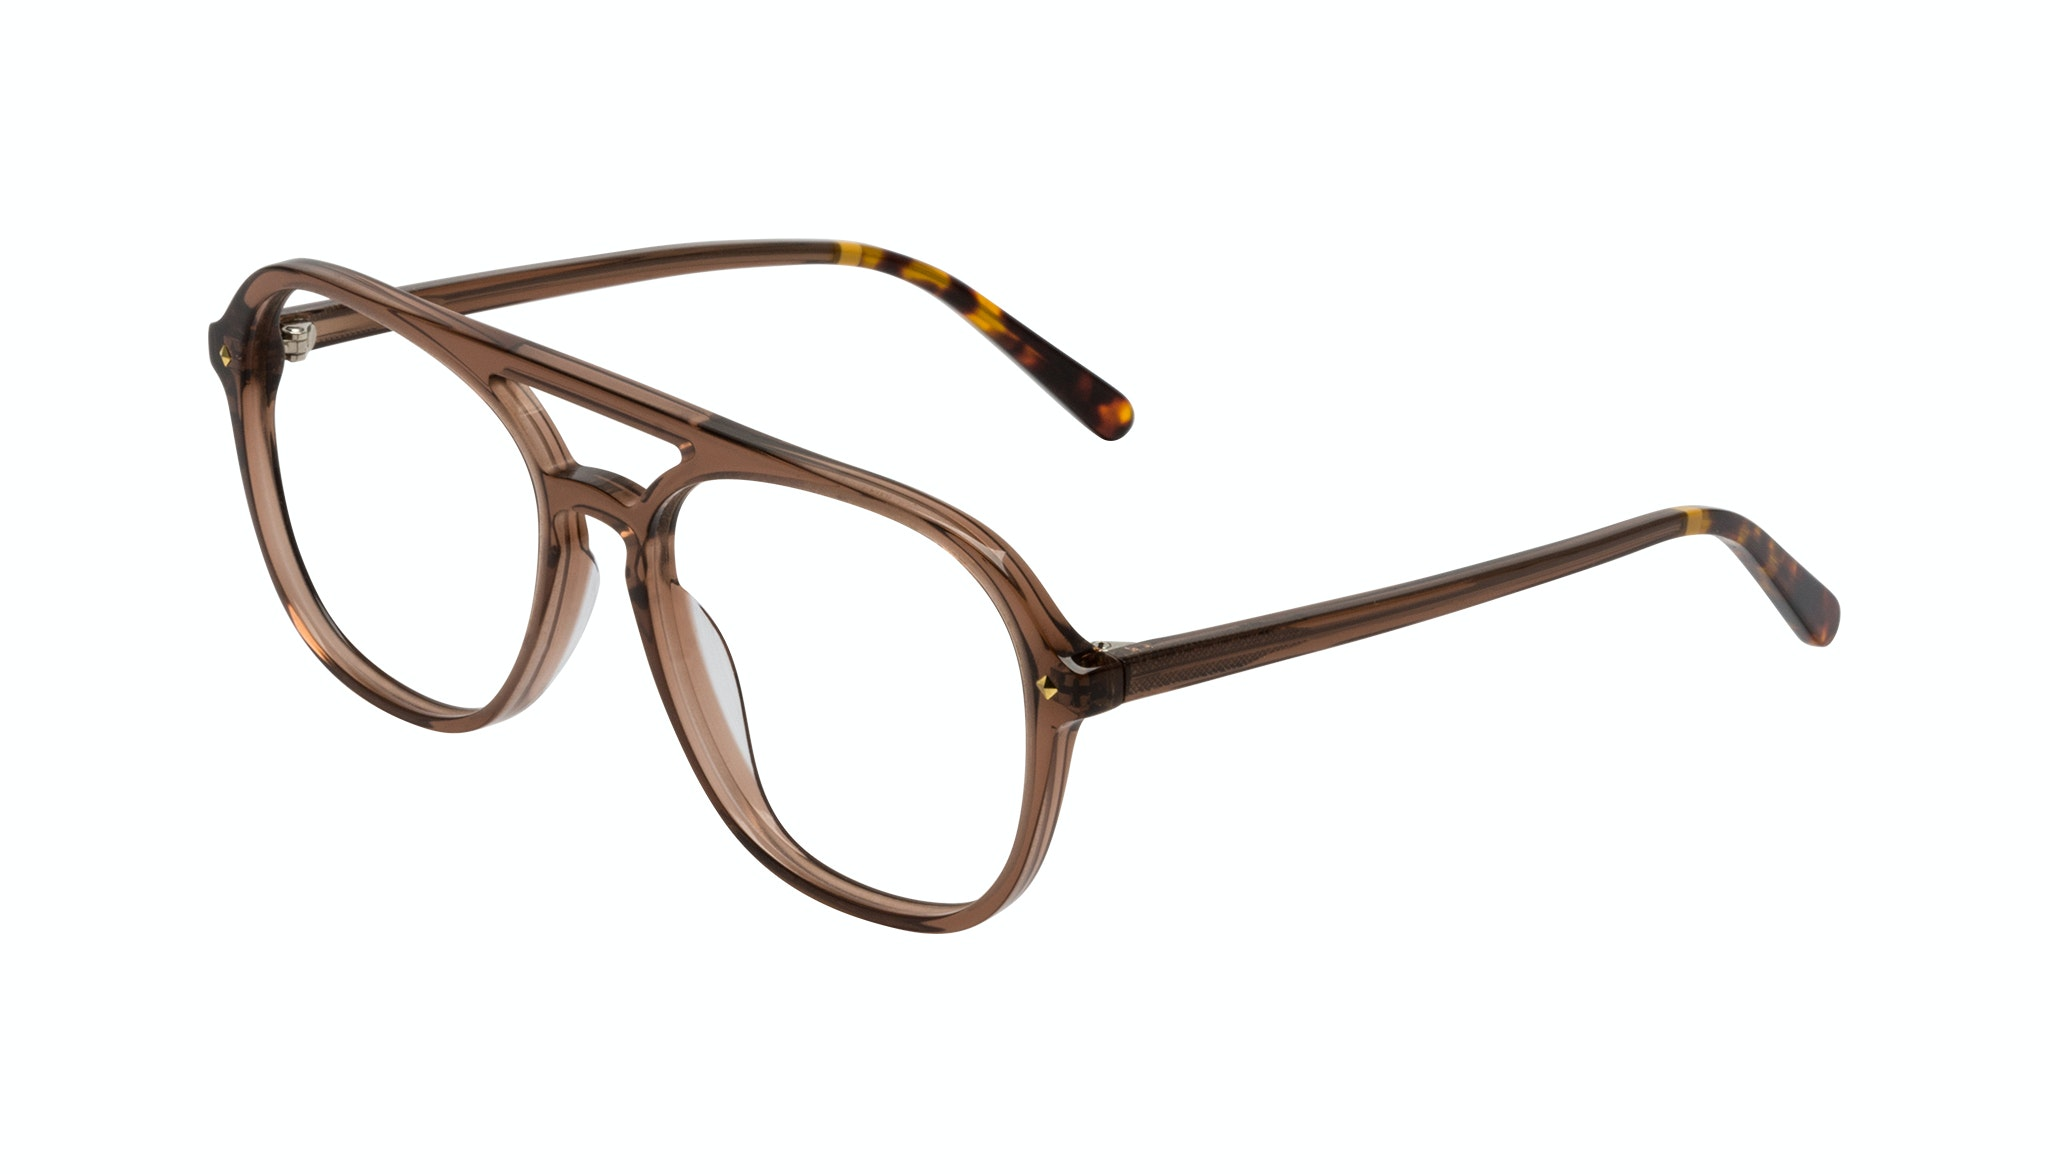 Affordable Fashion Glasses Aviator Eyeglasses Women Jerry Terra Tilt